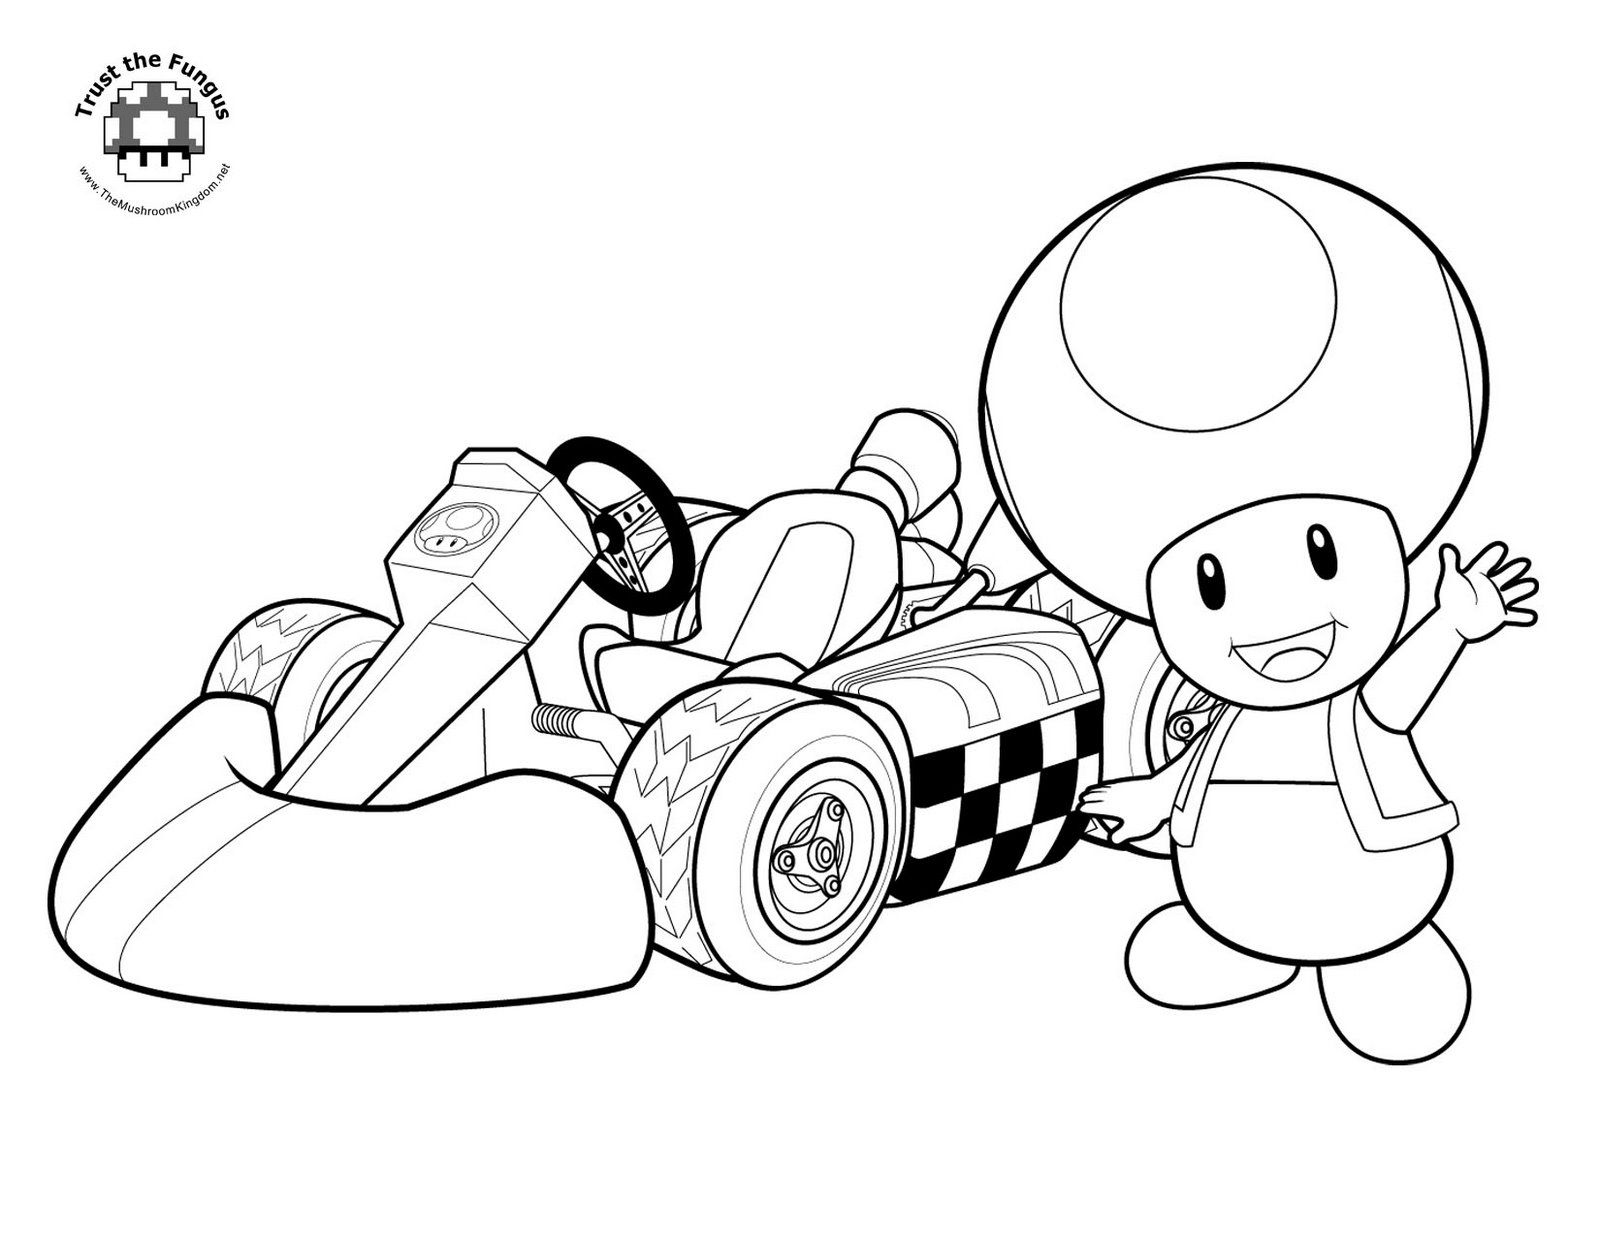 Printable Mario Coloring Pages Mario Coloring Pages Super Mario Coloring Pages Coloring Pages